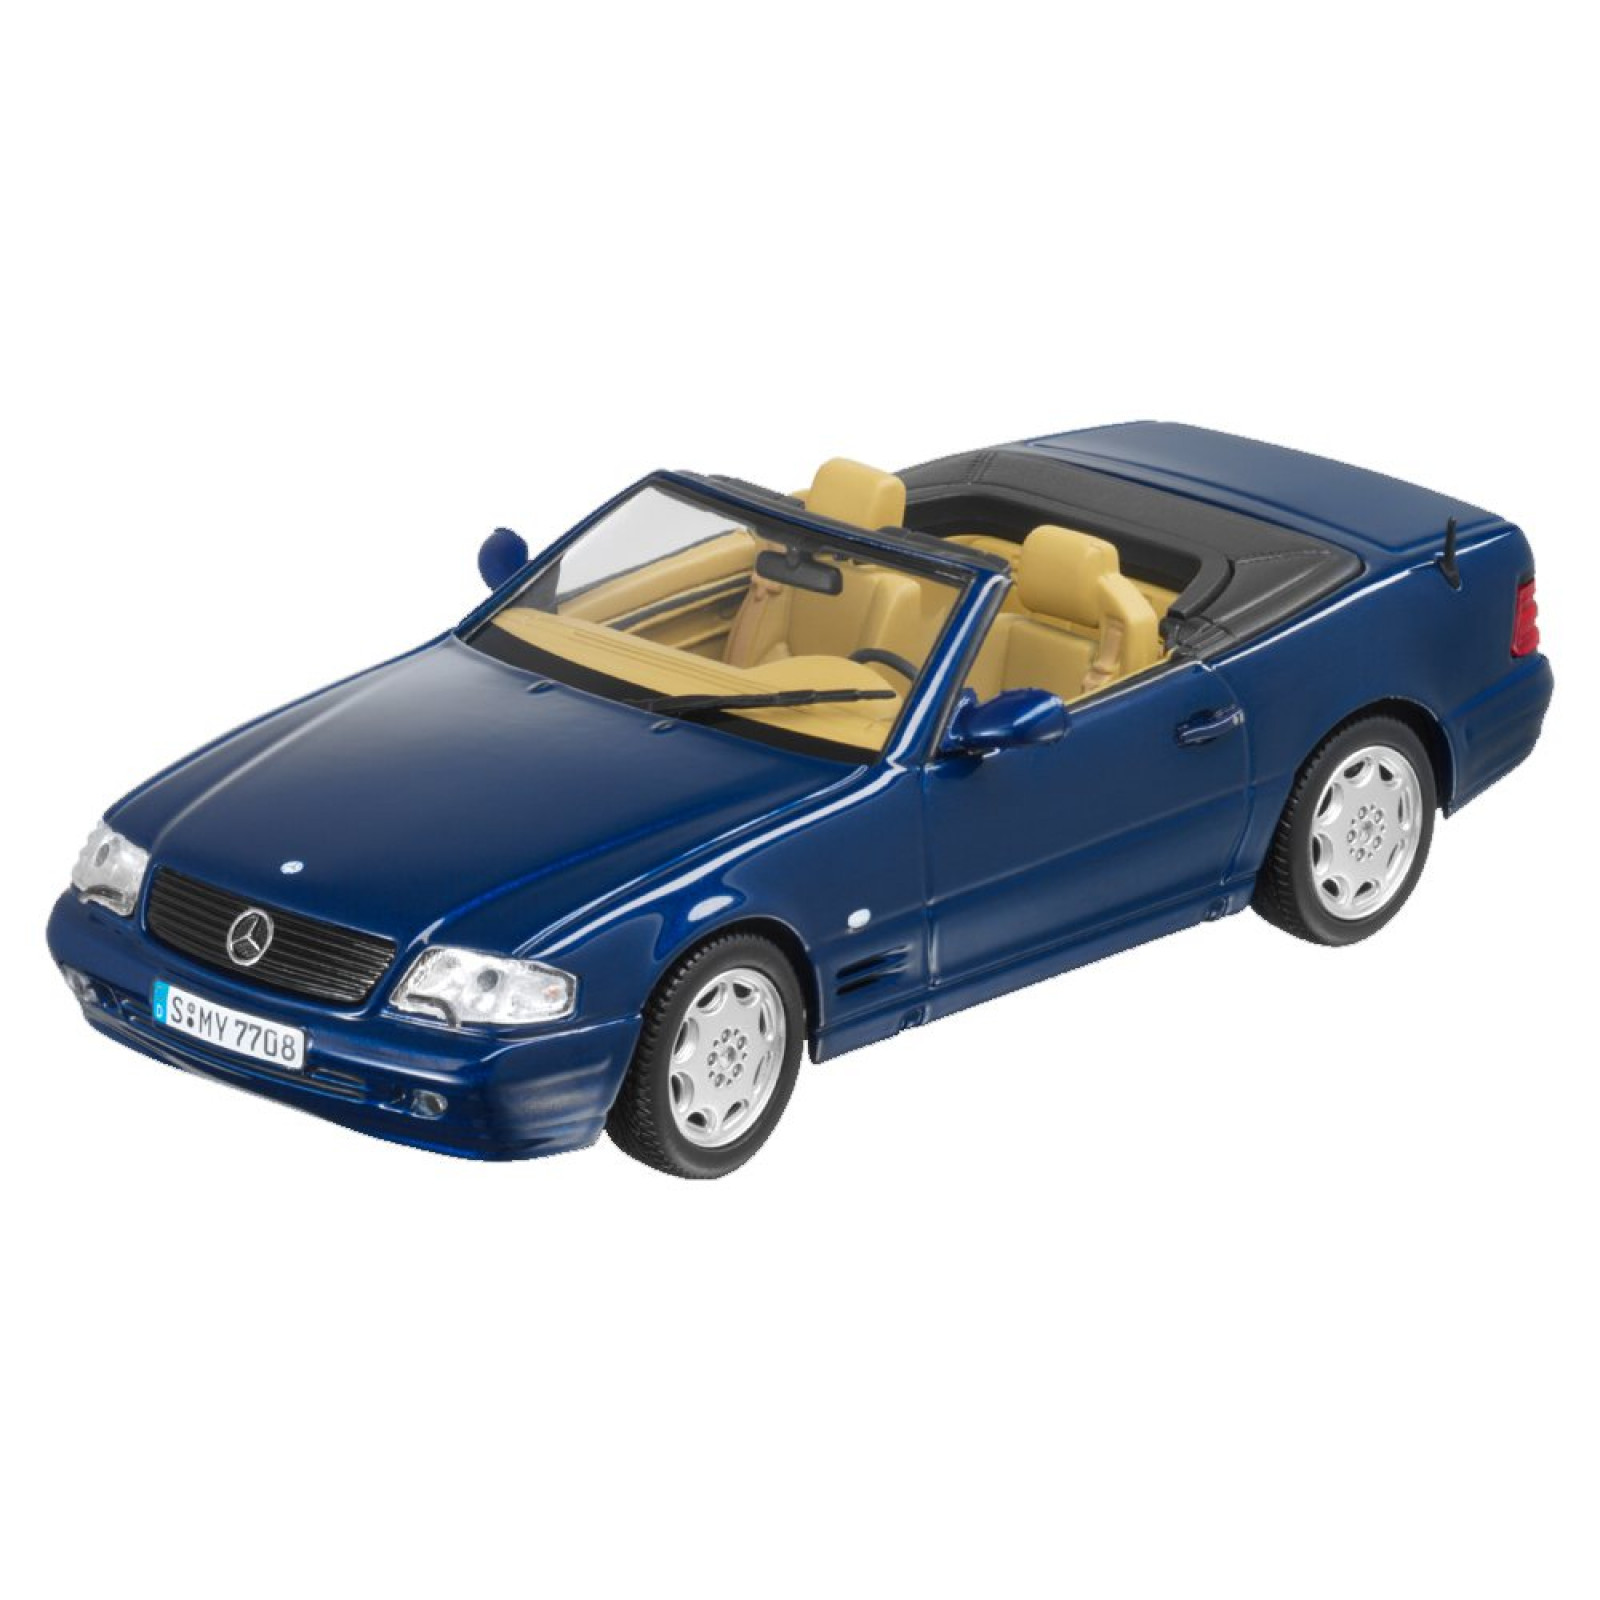 Mercedes Benz 1998 39 01 R129 500sl 1 43 Scale Diecast Model